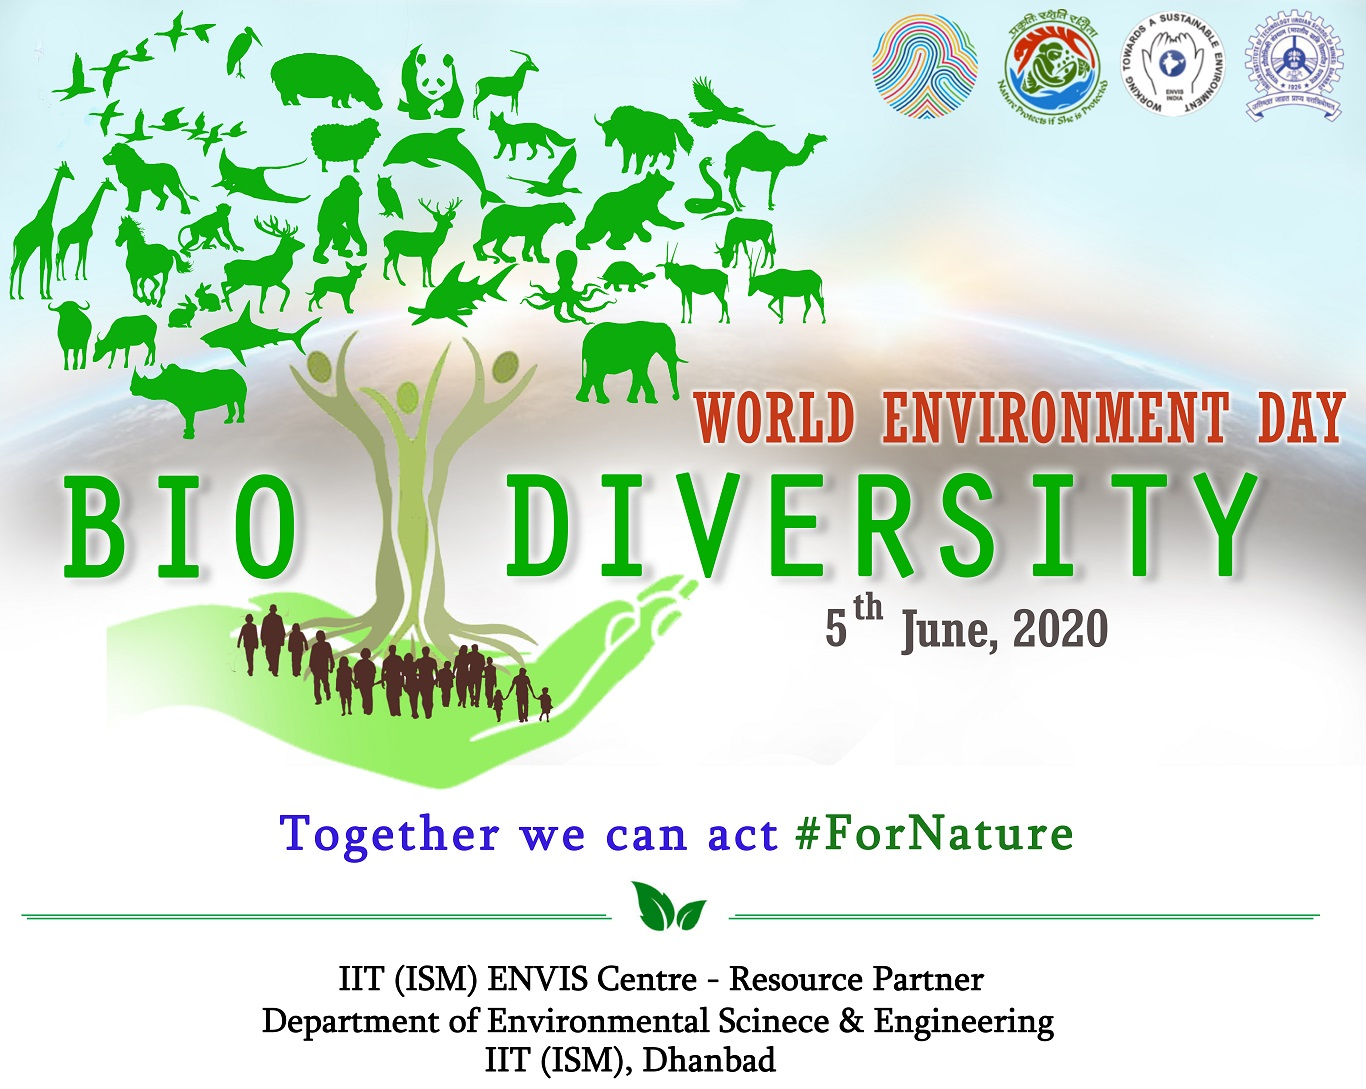 Major Activity Envis Centre Ministry Of Environment